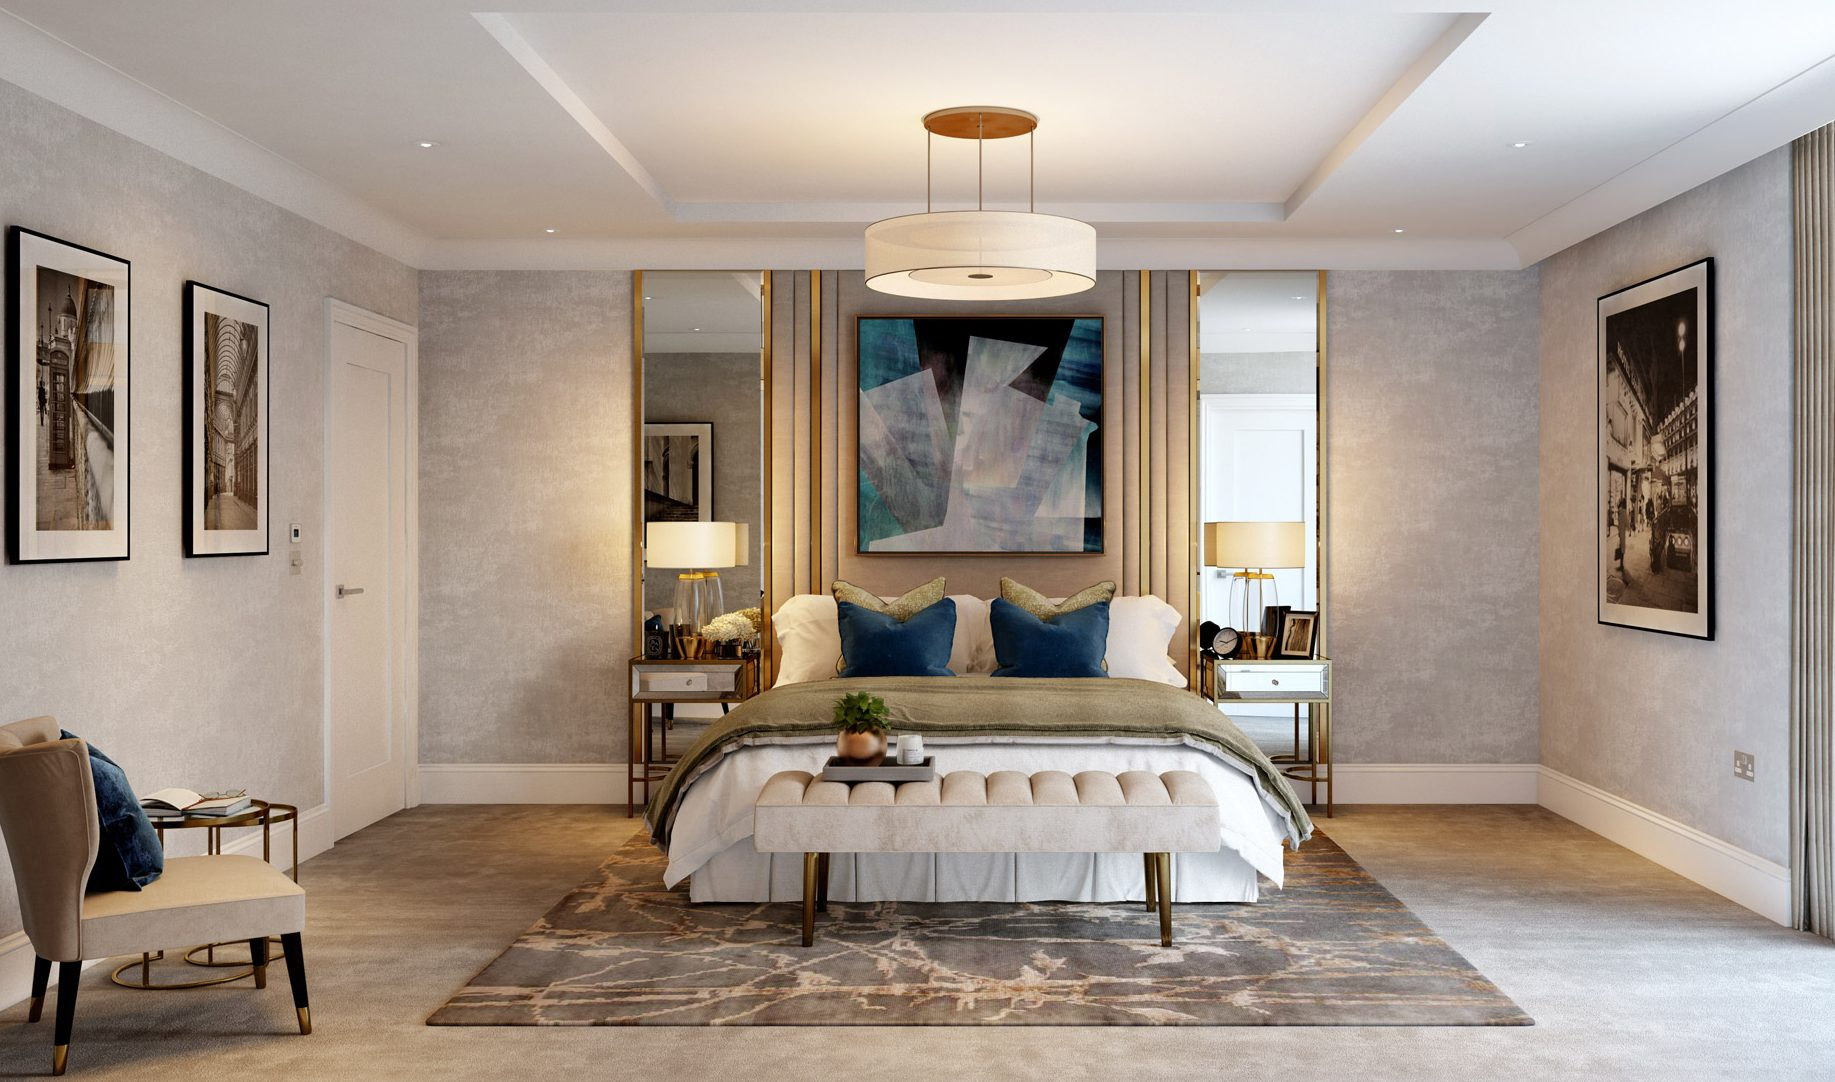 The importance of internships for interior design with 1.61 London